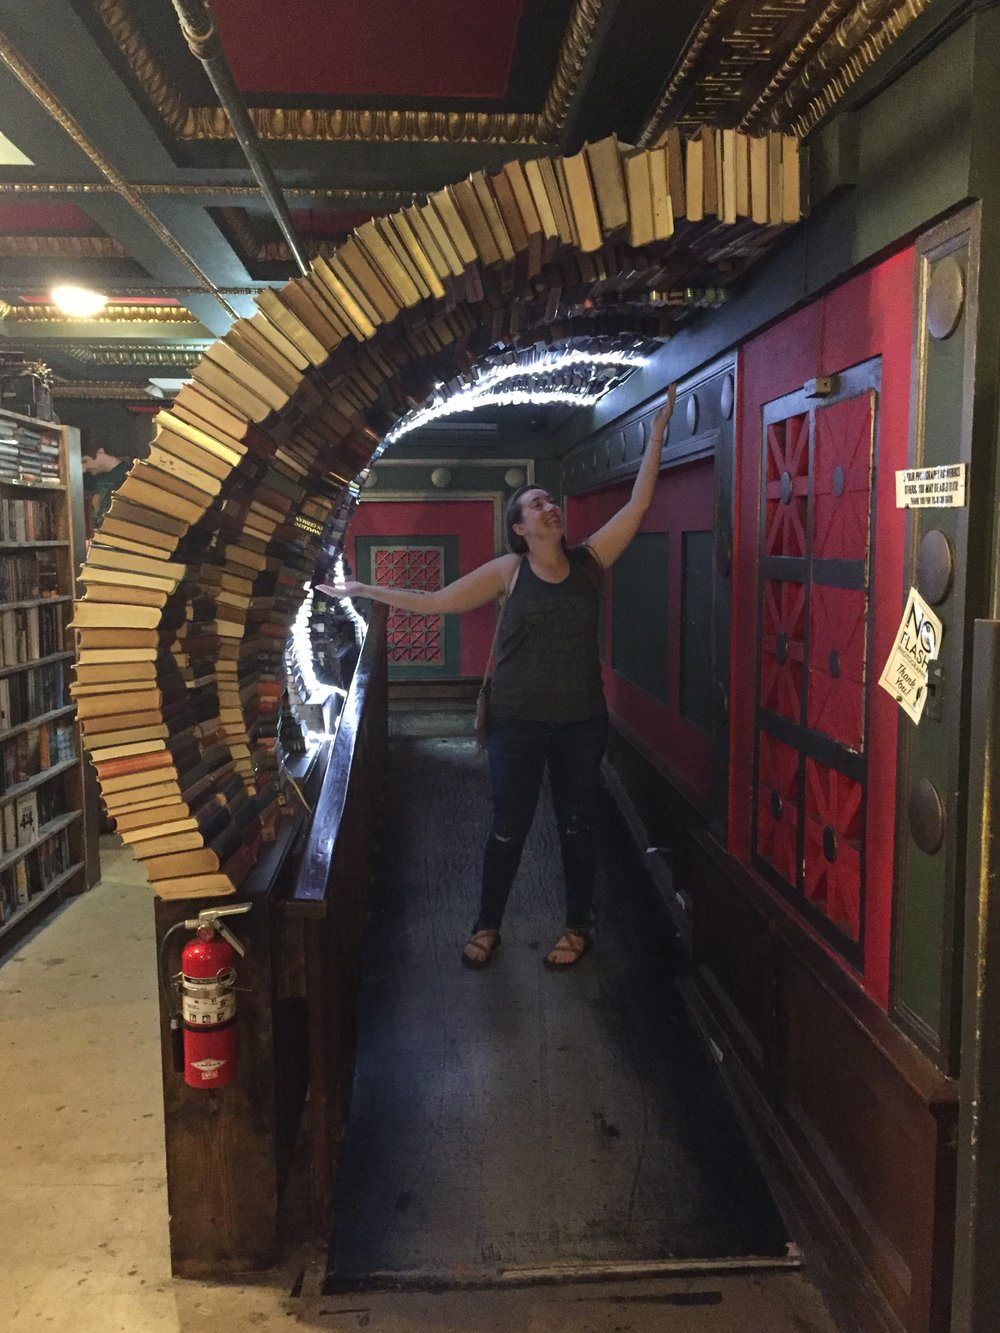 [image description: A low ramp with arcs of books overhead. I'm standing on the ramp with my arms outstretched, smiling up at the books. I'm a white woman of average height and build, with long hair, wearing jeans, sandals, and a gray tank top.]